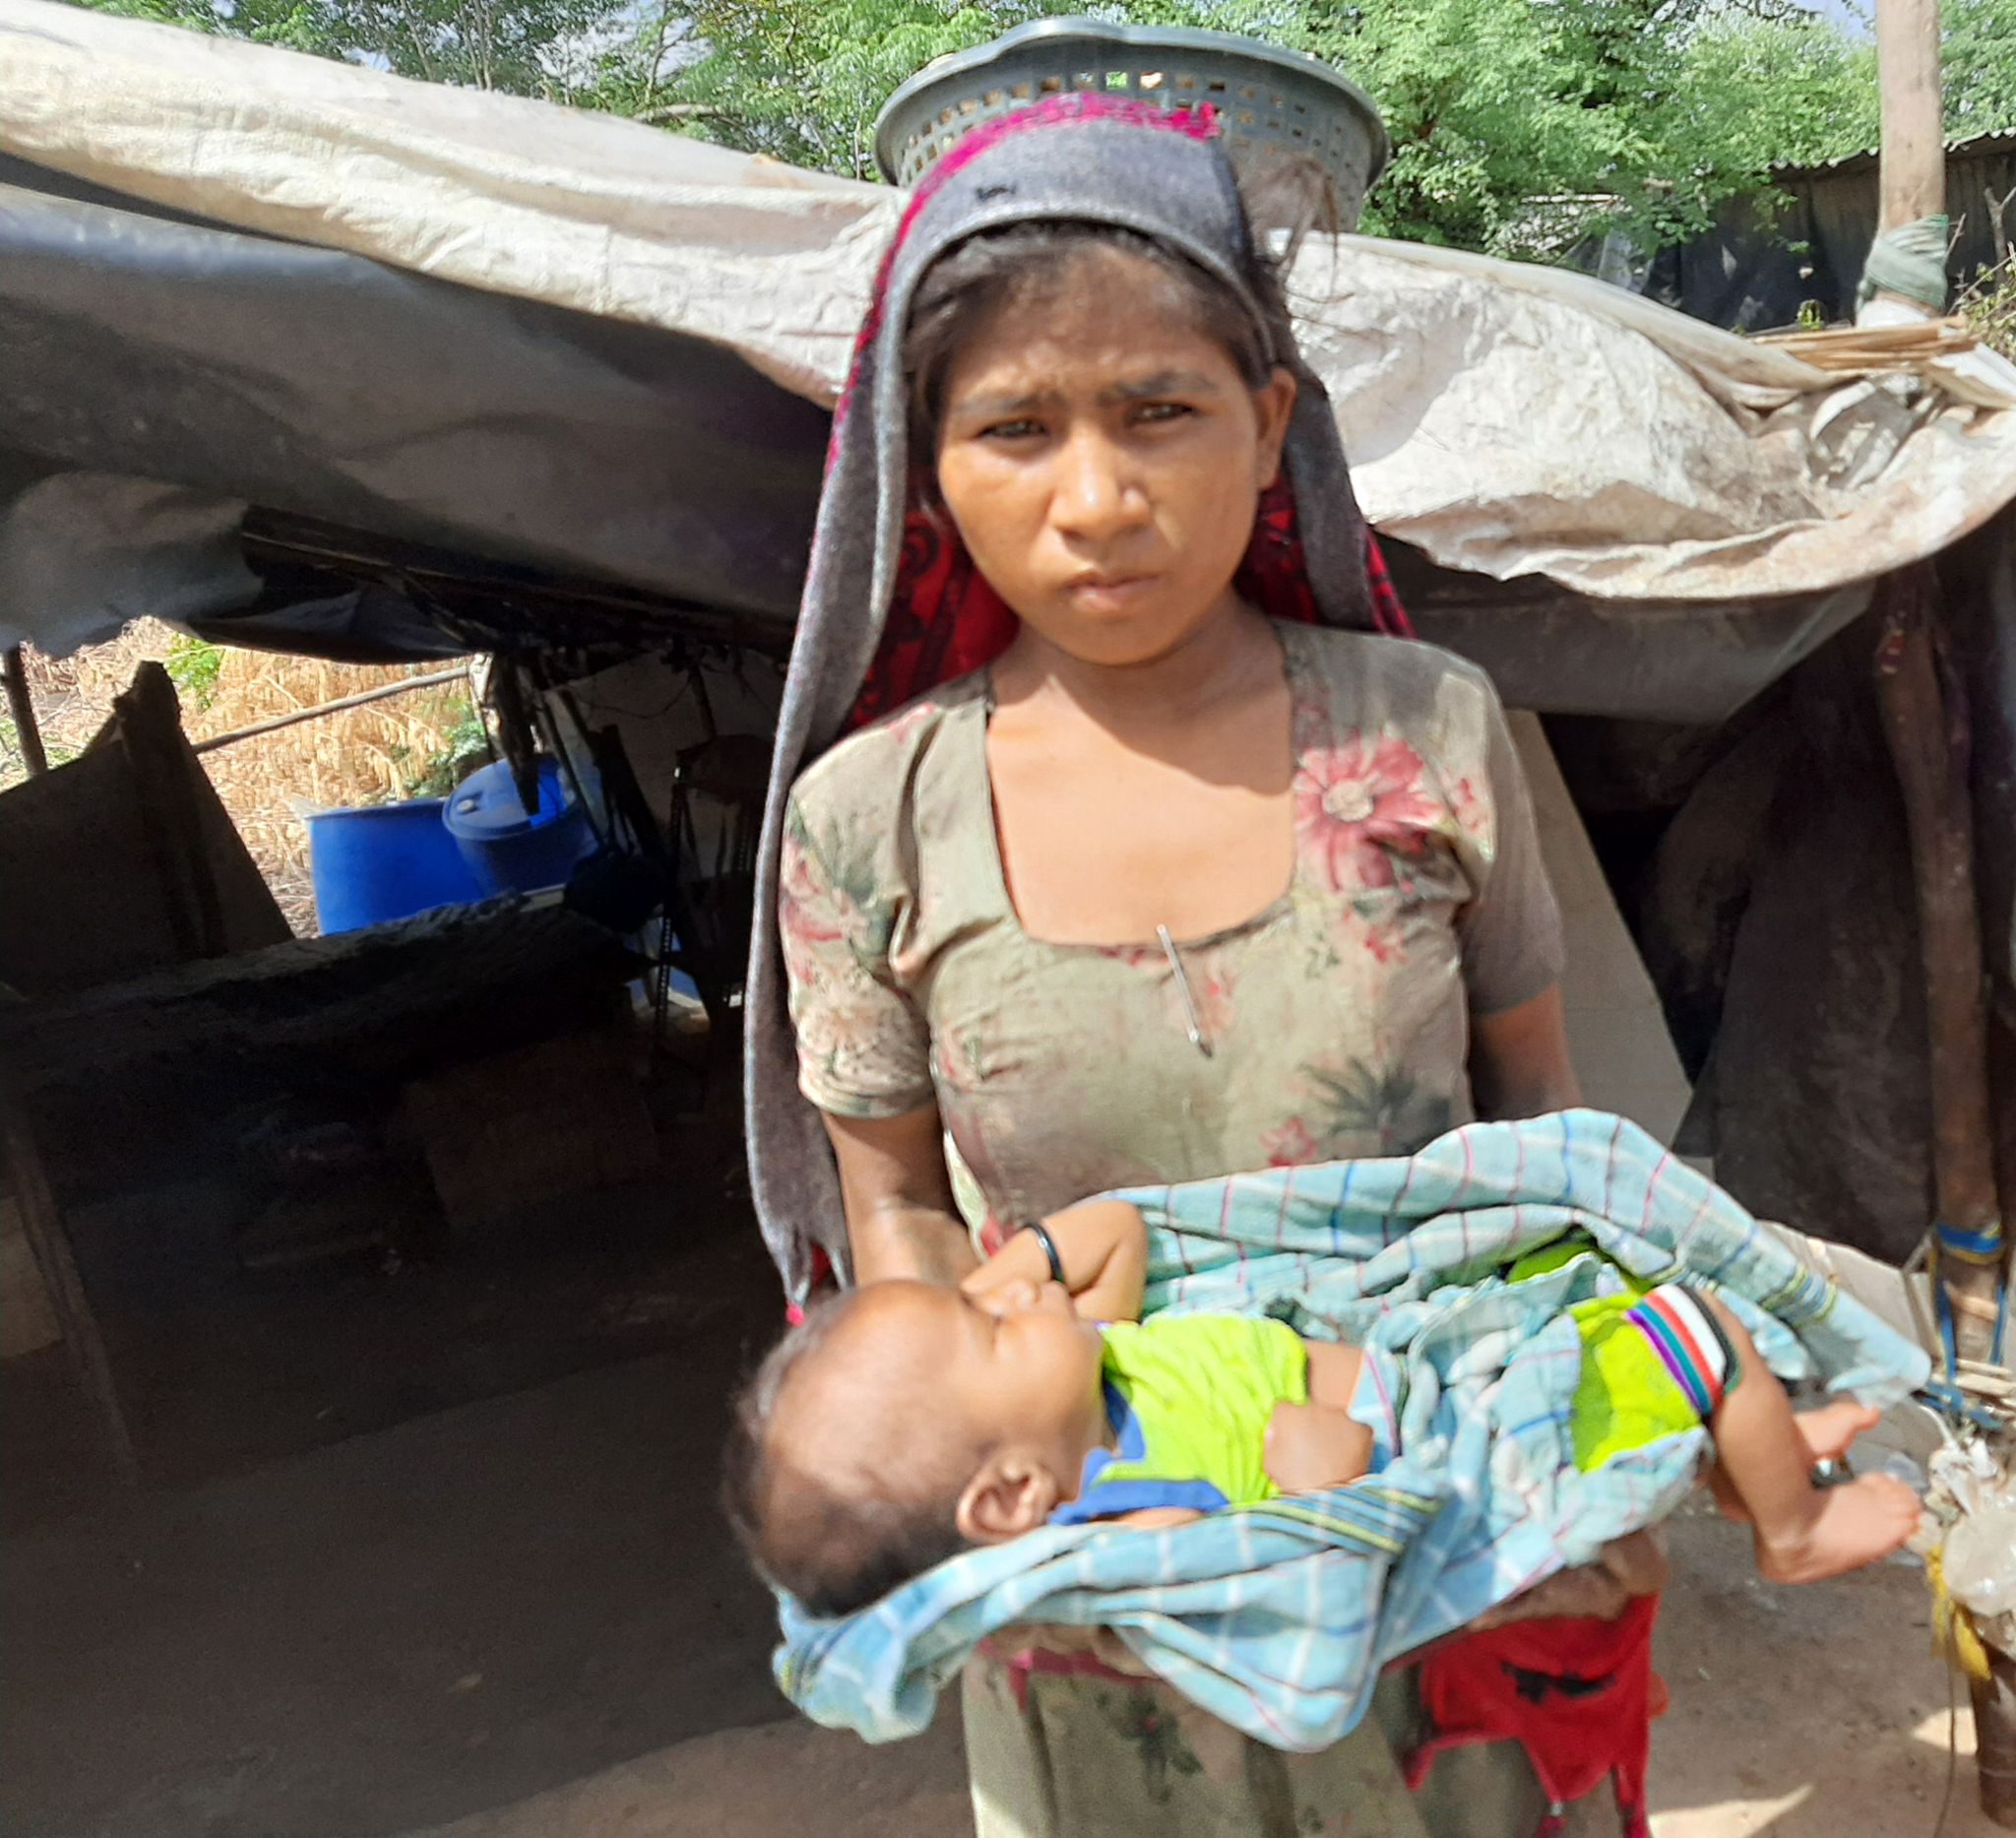 Gujarat: The Indian baby who was abducted twice thumbnail